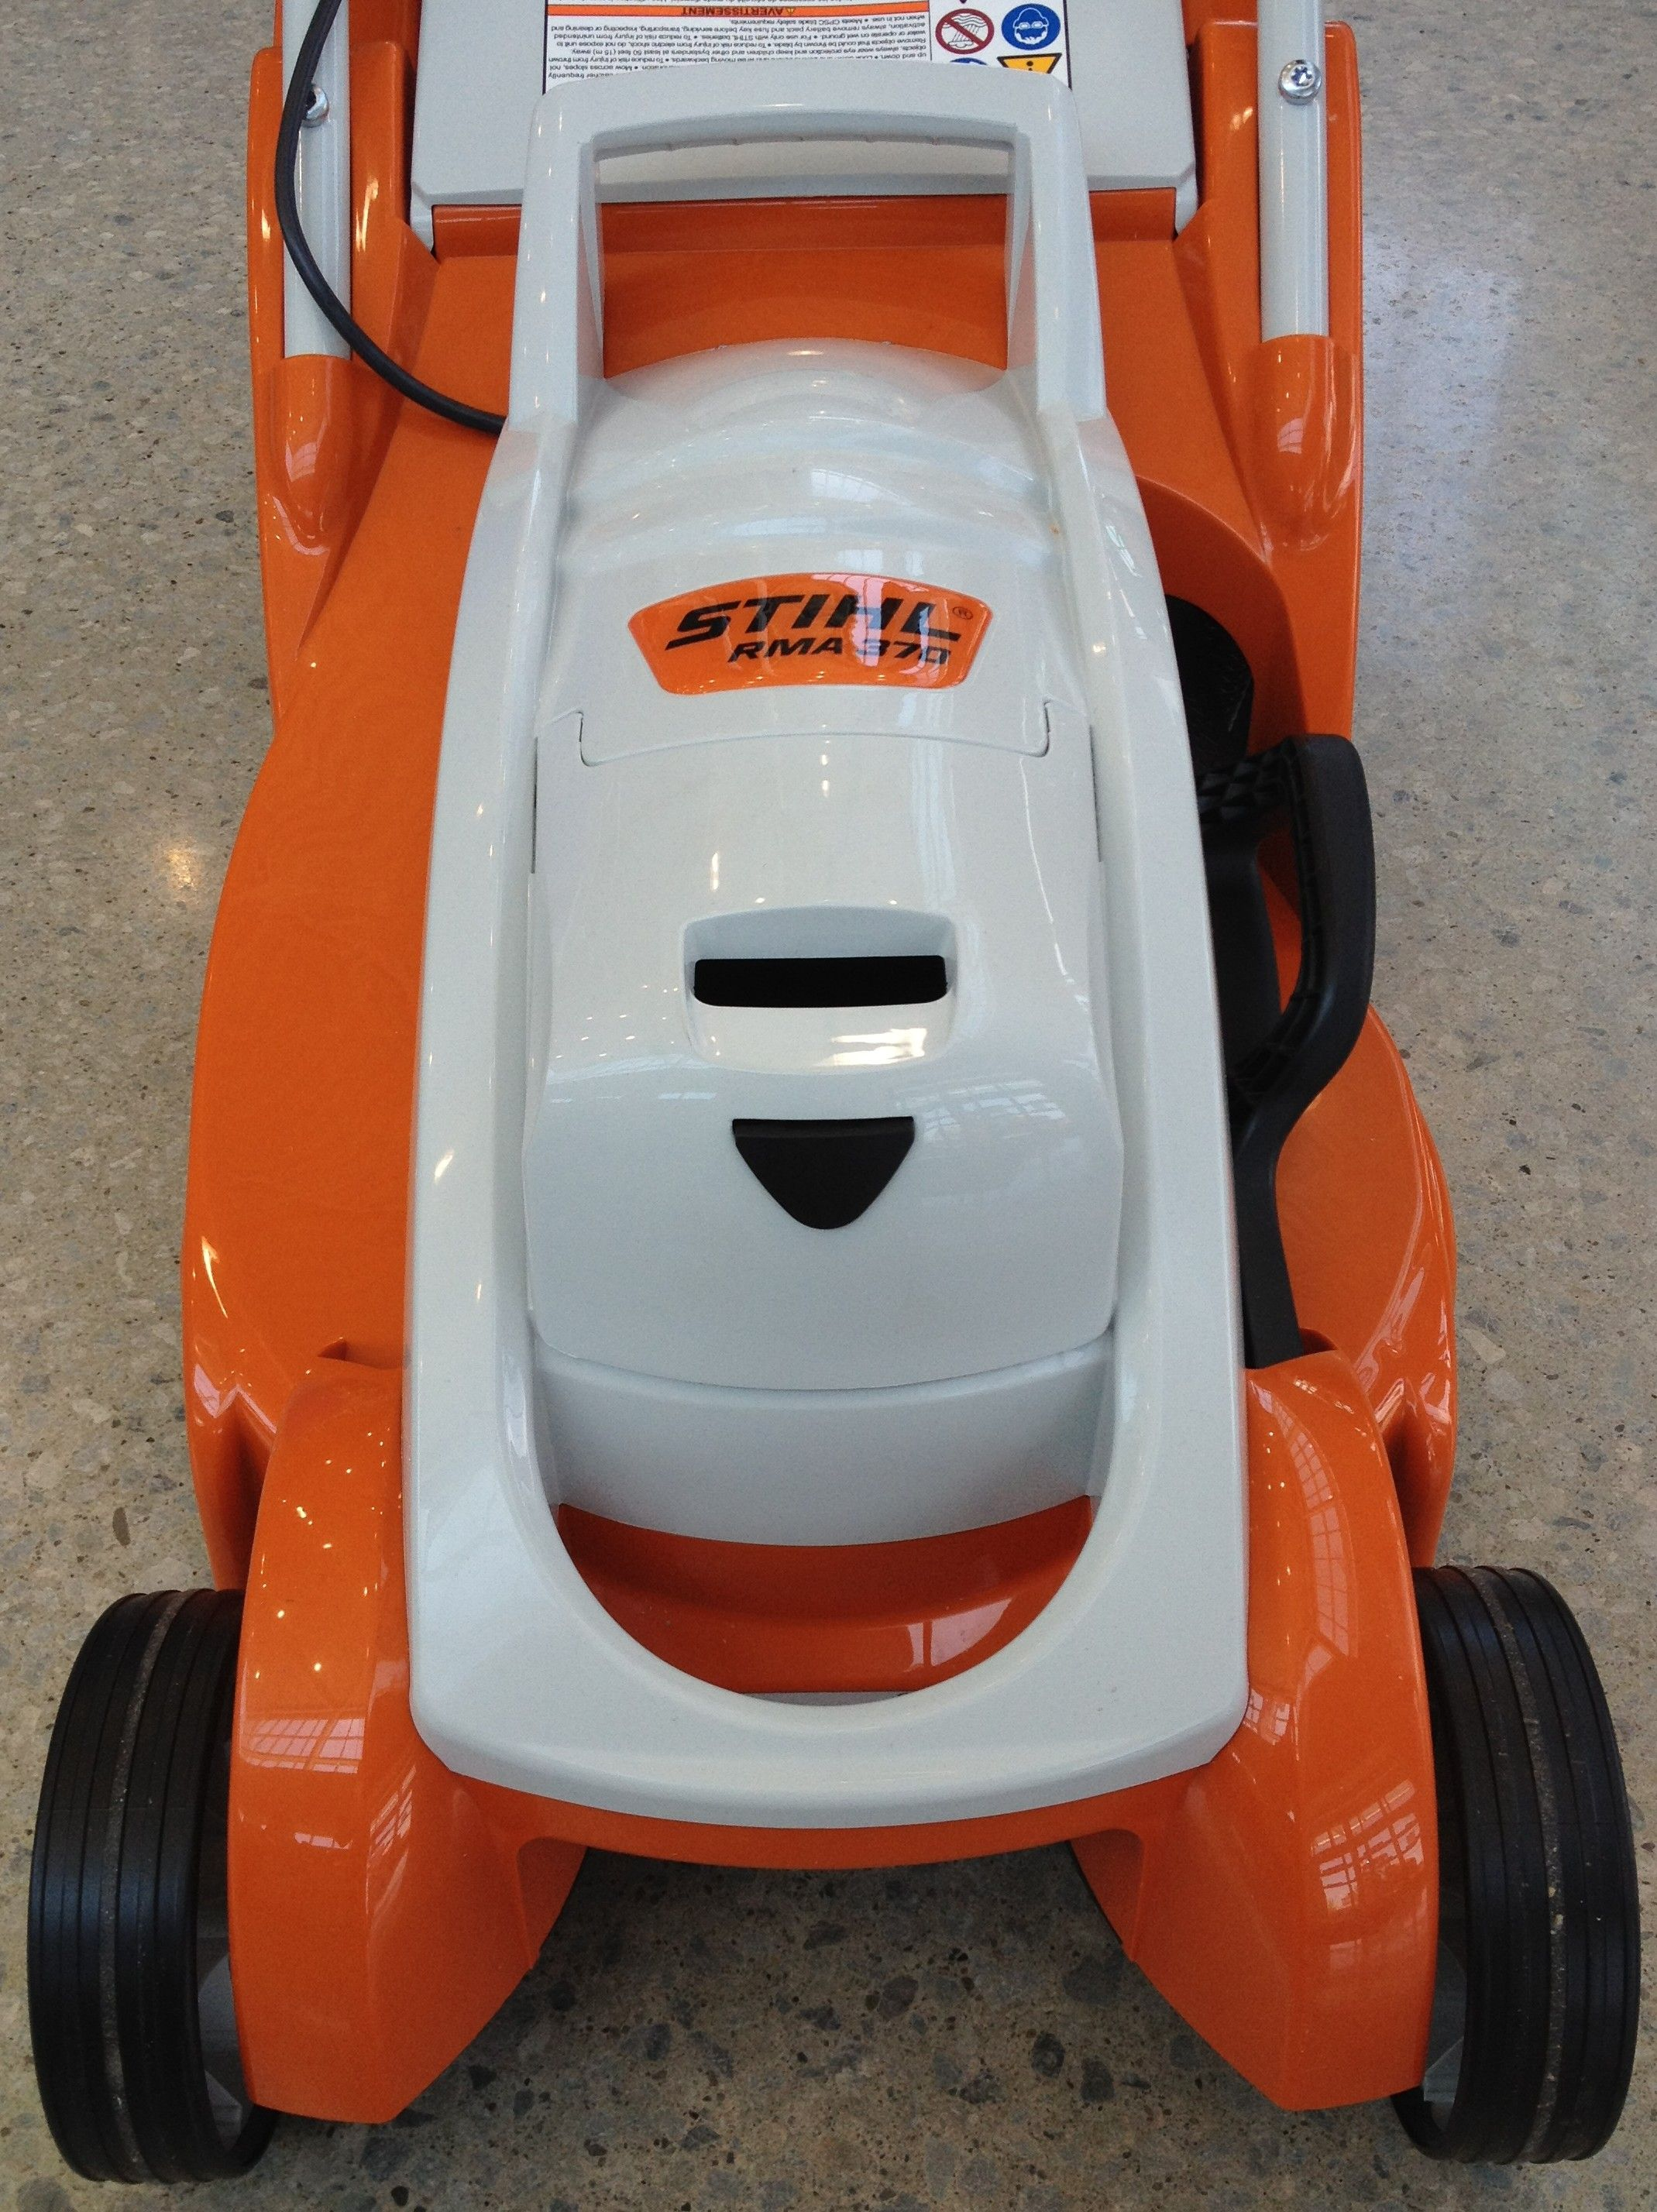 front view of RMA 370 STIHL lithium ion powered walk-behind mower